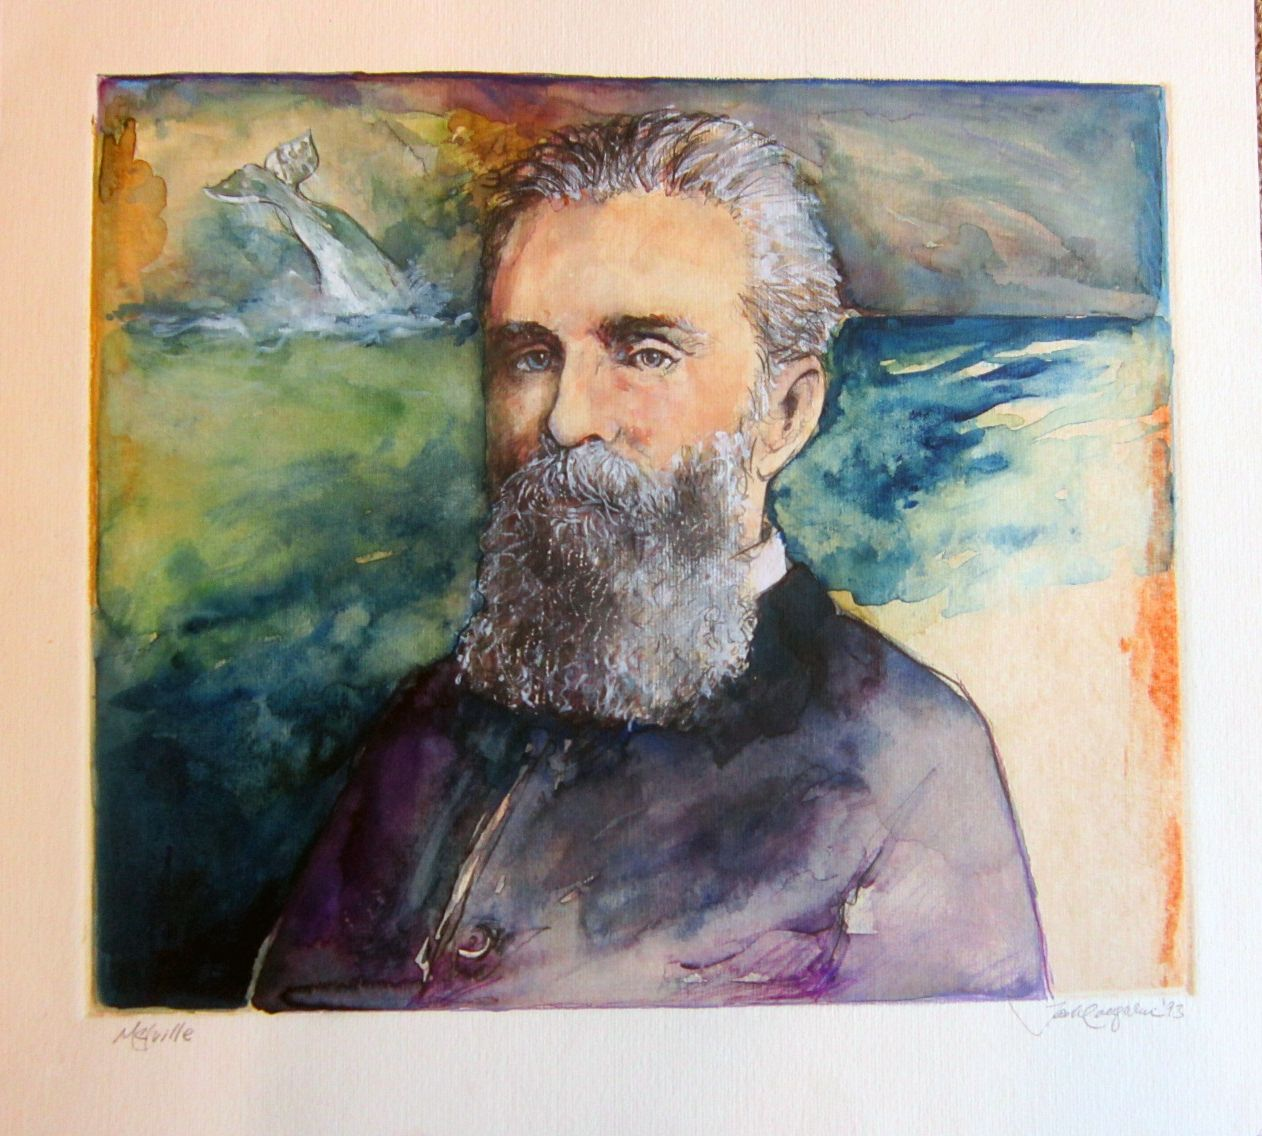 Watercolor artists names - Nice Watercolor Of Melville The Artists Name Looks Like Jack Laughlin Yellowing Of Paper